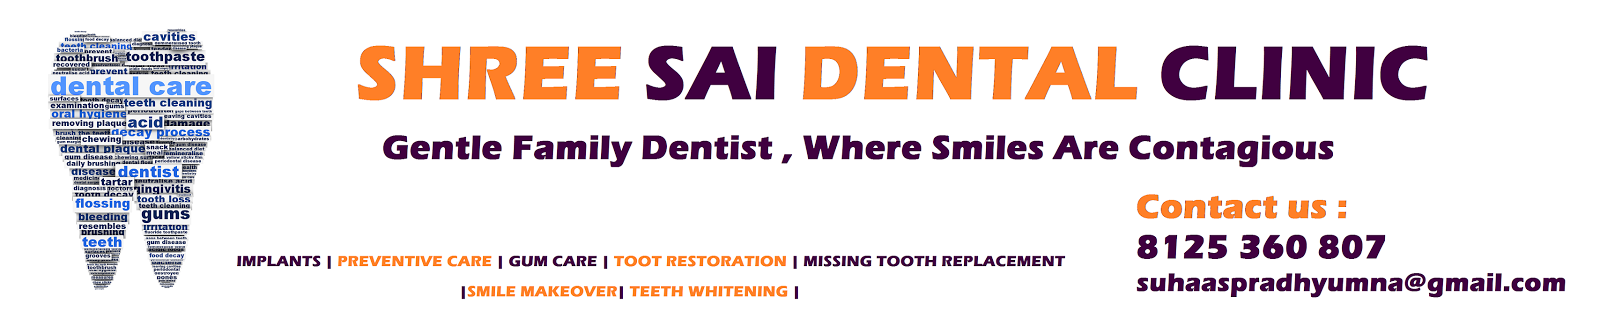 SHREE SAI DENTAL CLINIC - HYDERABAD